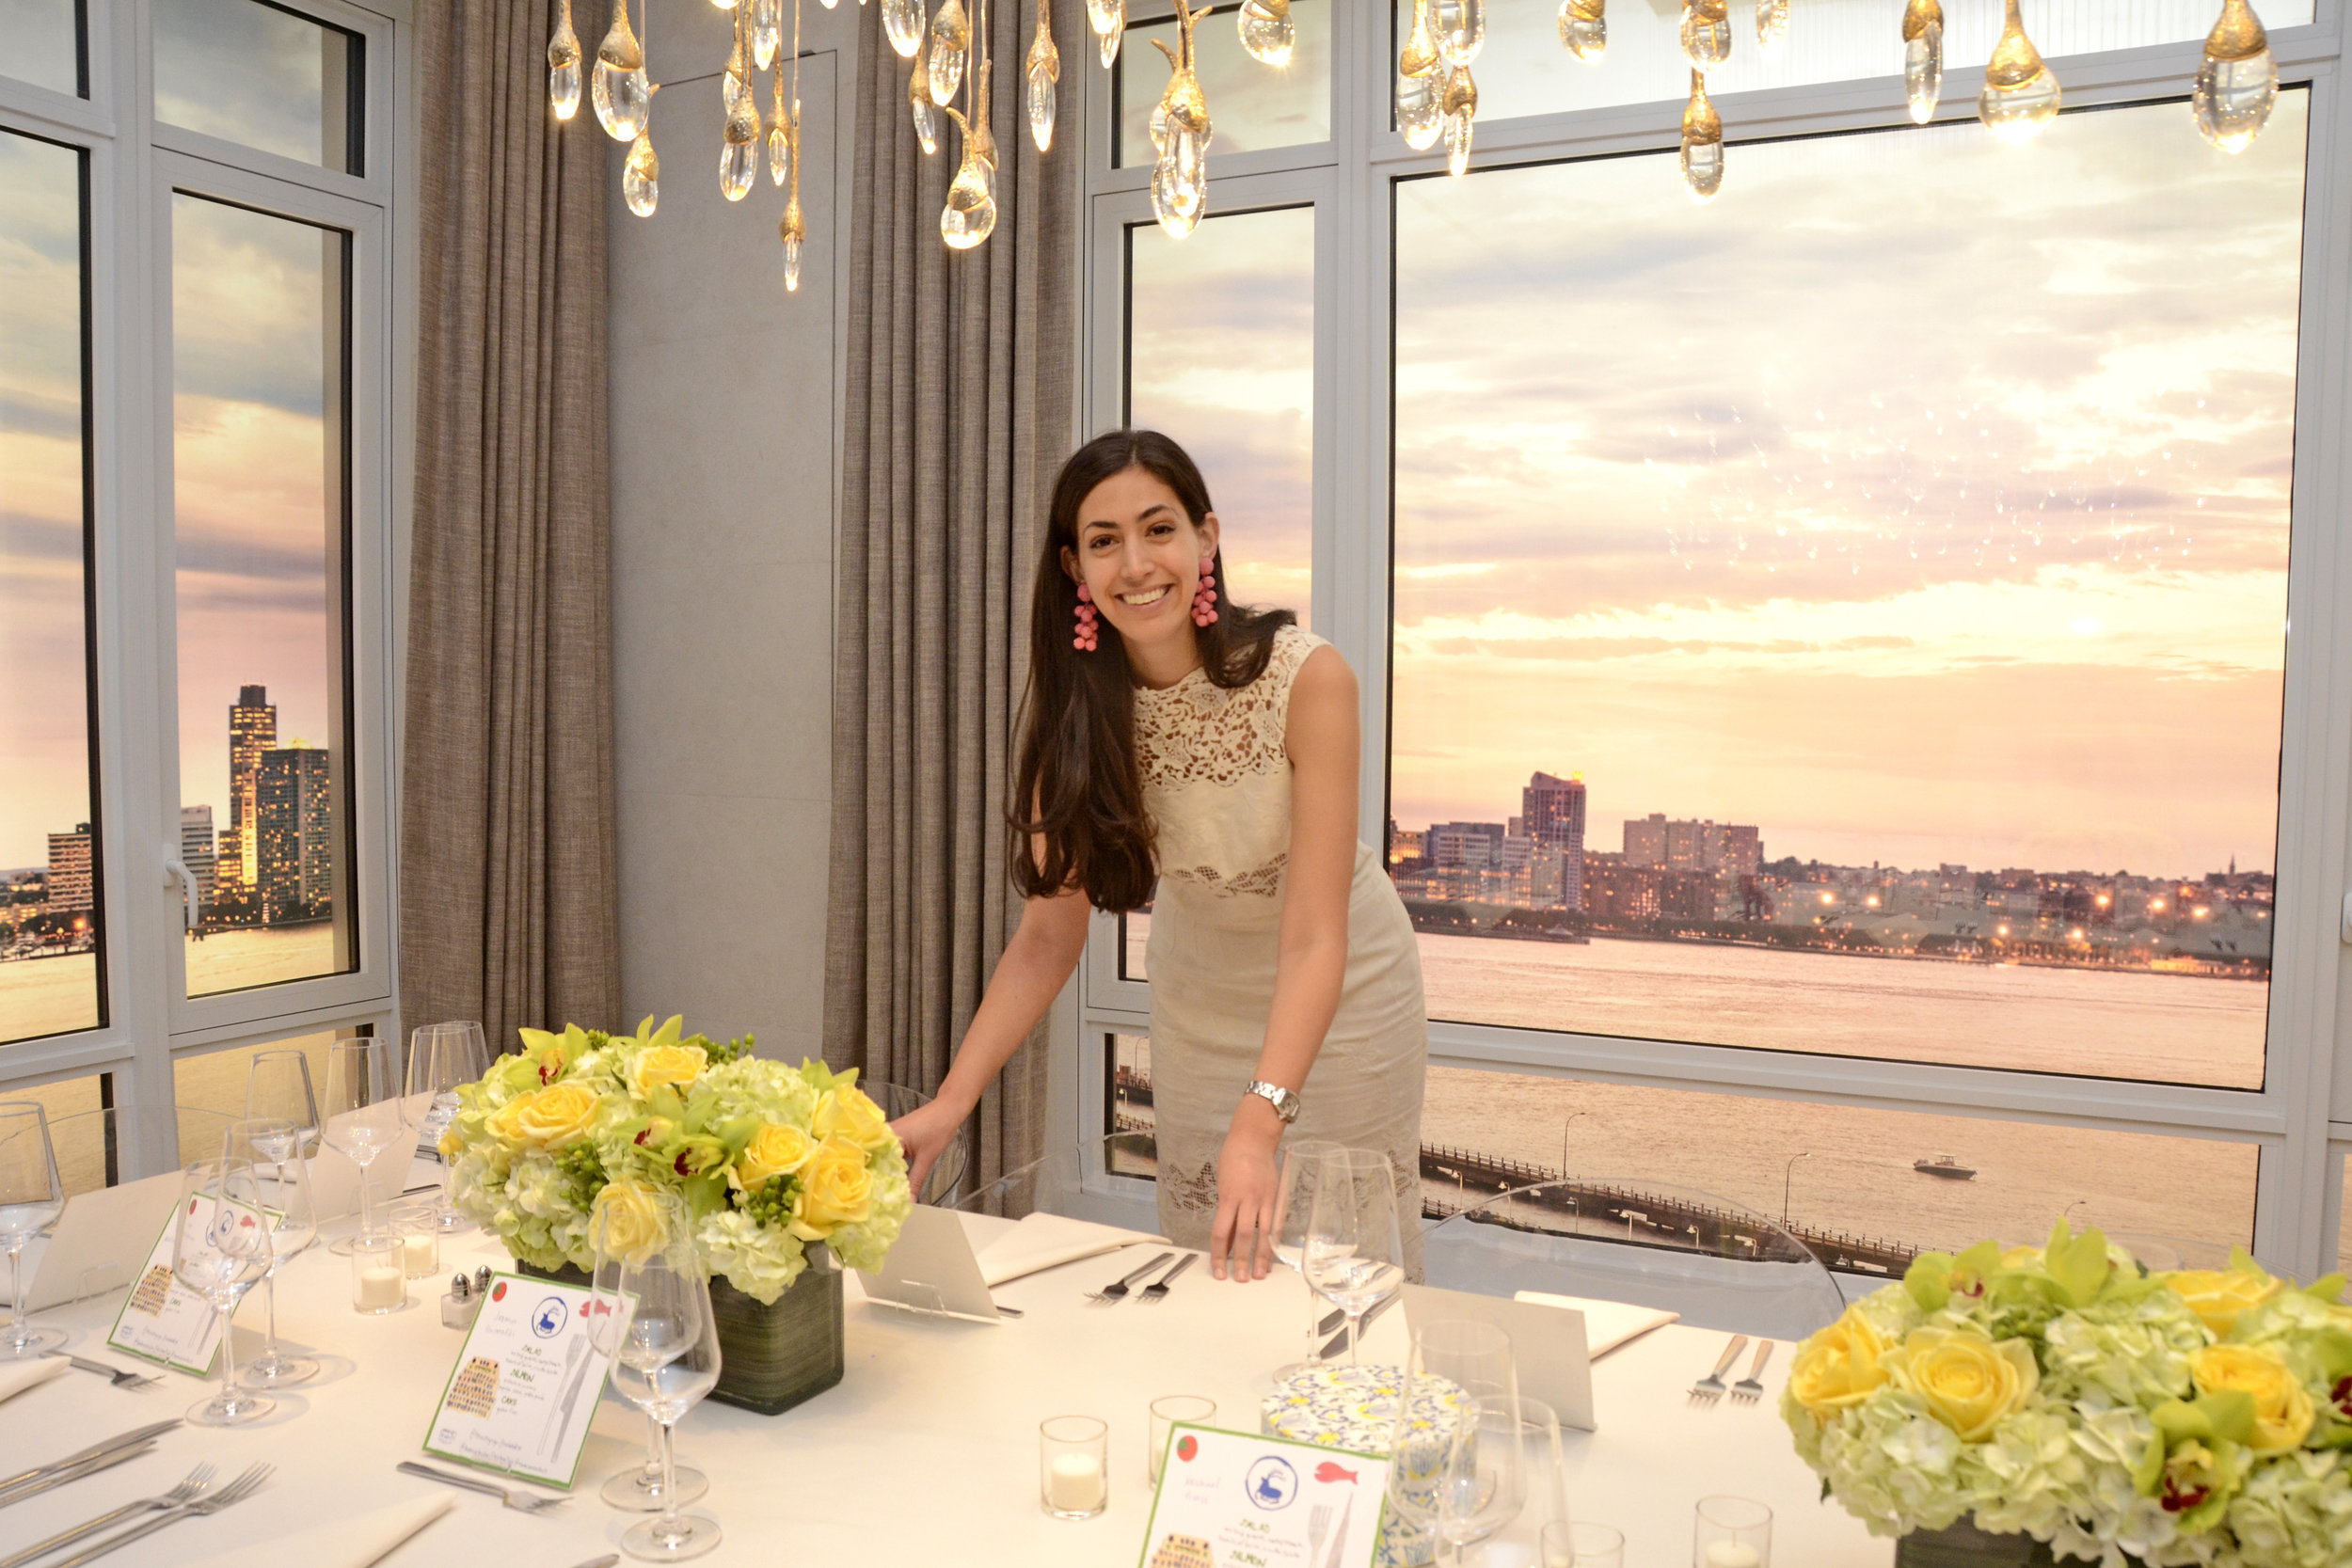 Chef Stephanie Nass setting the beautiful tablescape. Credit: Lukas Greyson